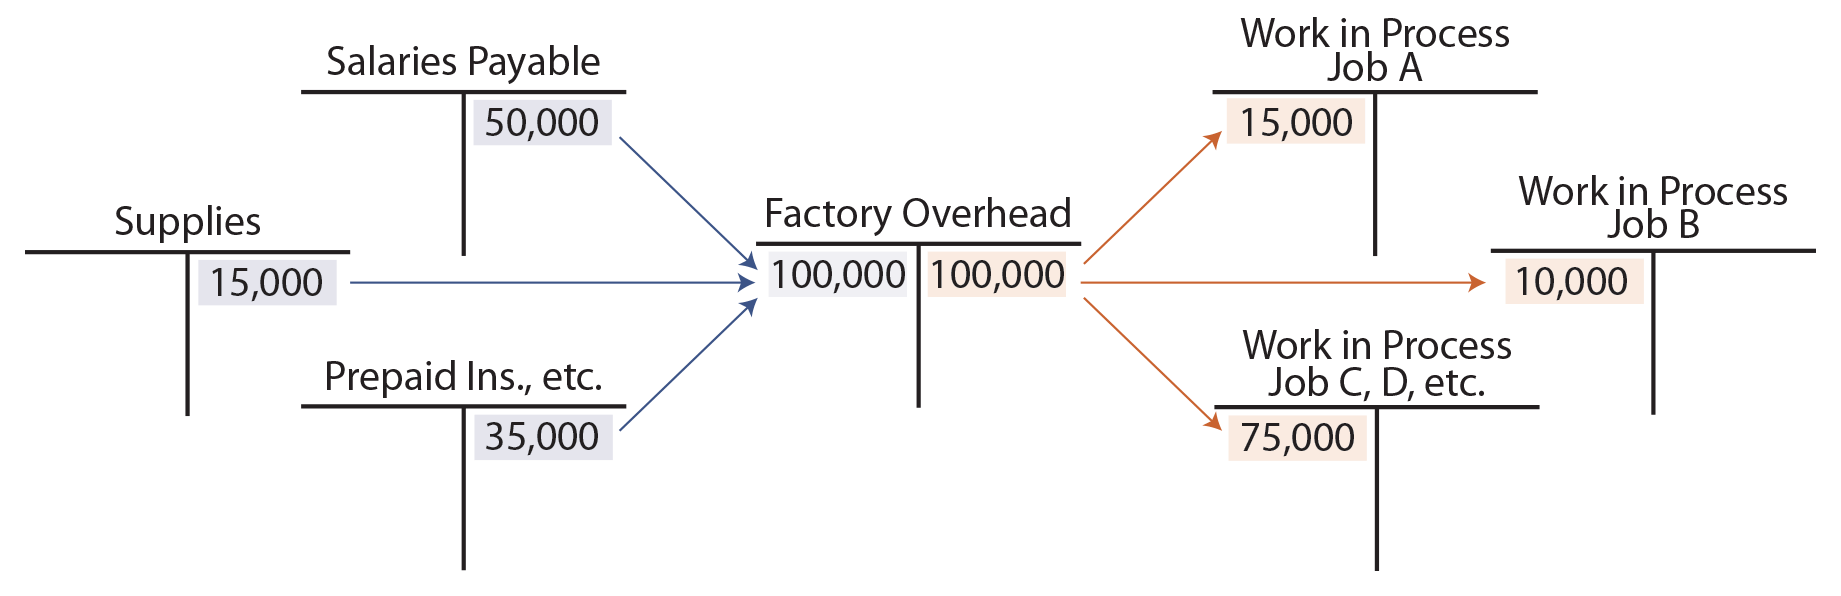 Actual and Applied Overhead - Factory Overhead T Accounts